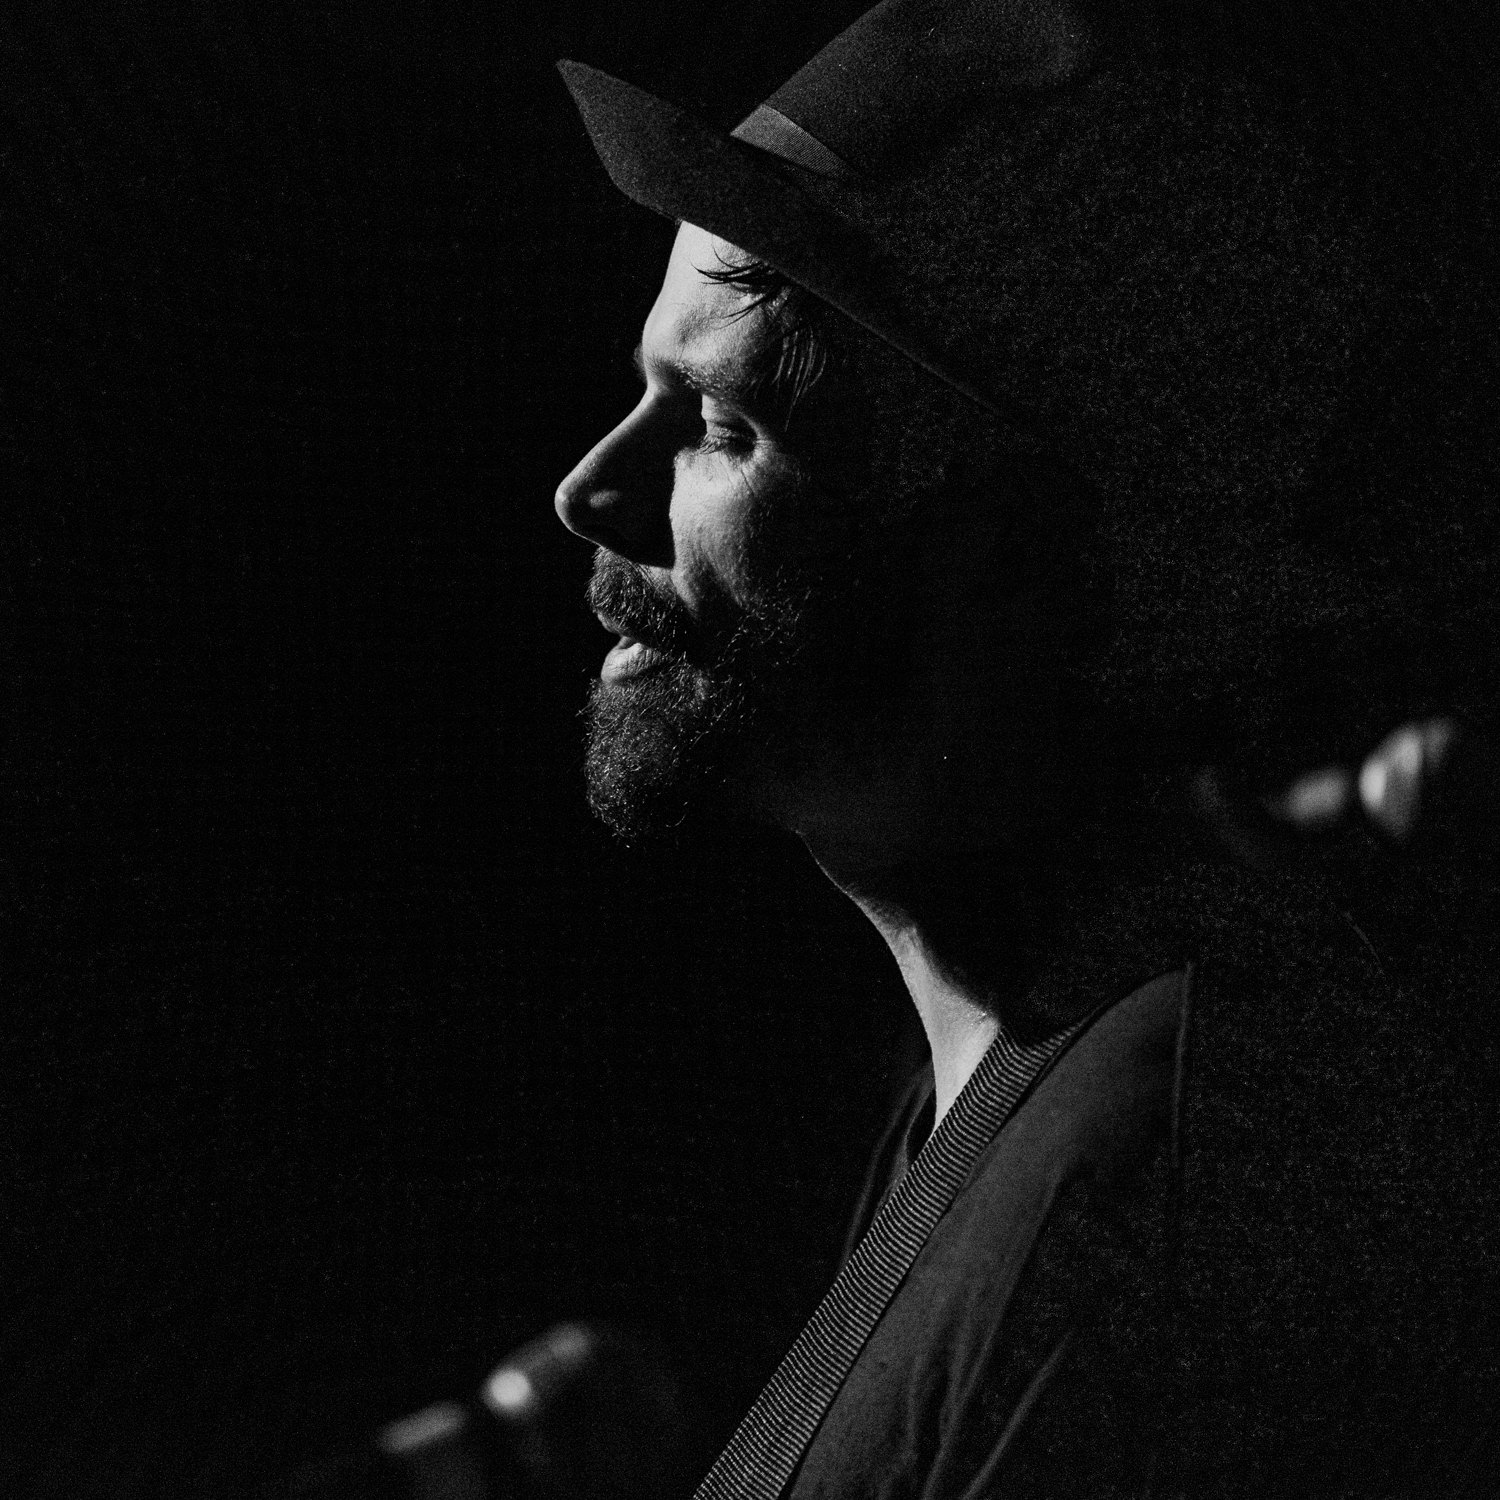 christian-zucconi-on-stage-portrait-black-white-AnnaLeeMedia